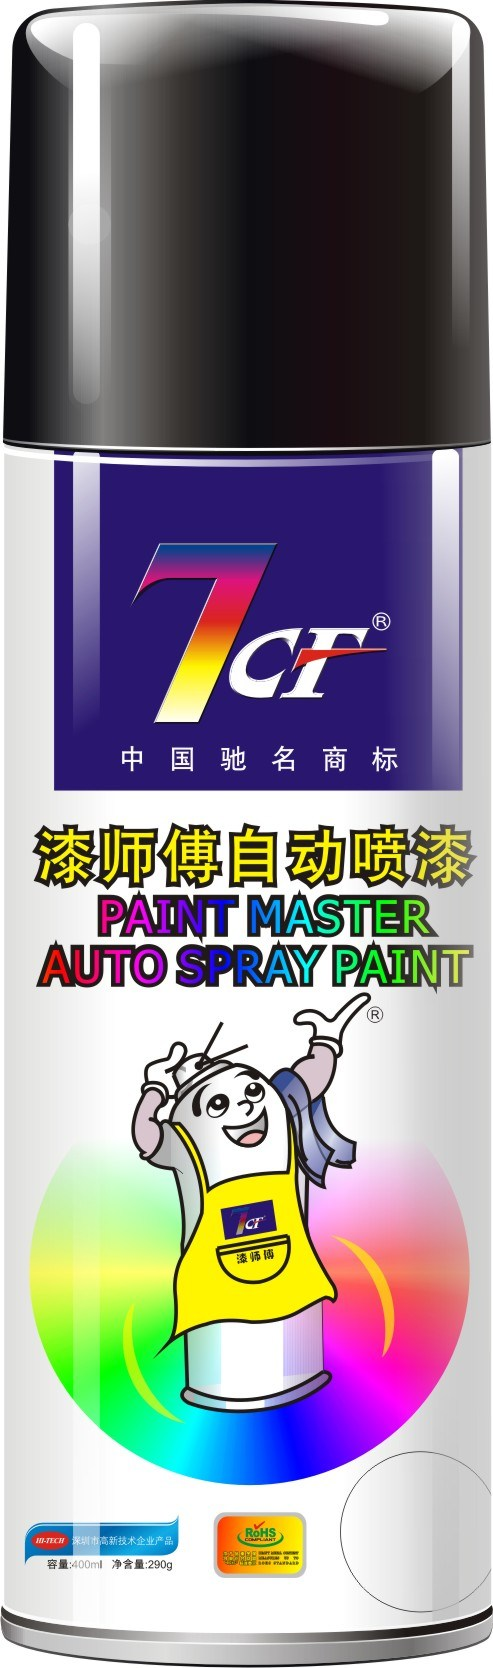 china plastic spray paint china best spray paint for plastic spray. Black Bedroom Furniture Sets. Home Design Ideas